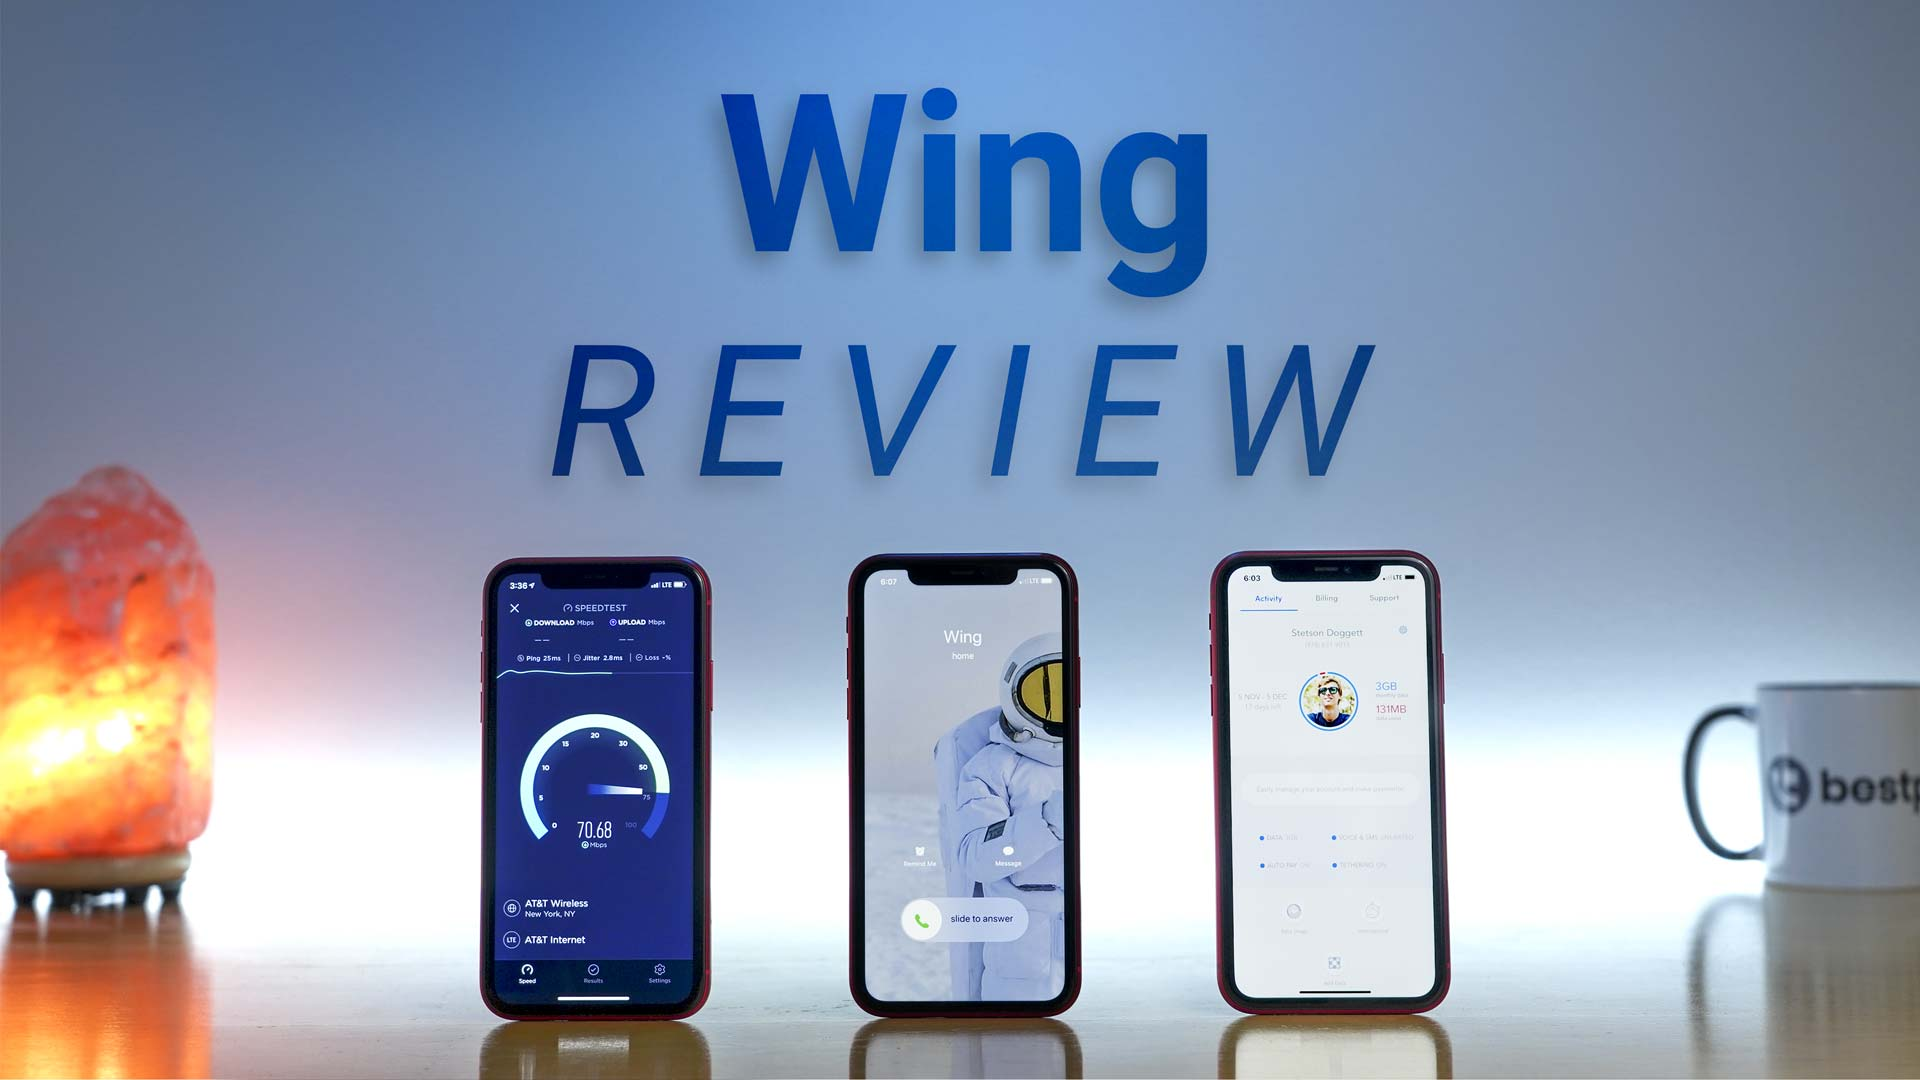 iPhone 11 Pro running cellular data speed test next to an iPhone 11 Pro receiving incoming phone call next to an iPhone 11 Pro open to the Wing application